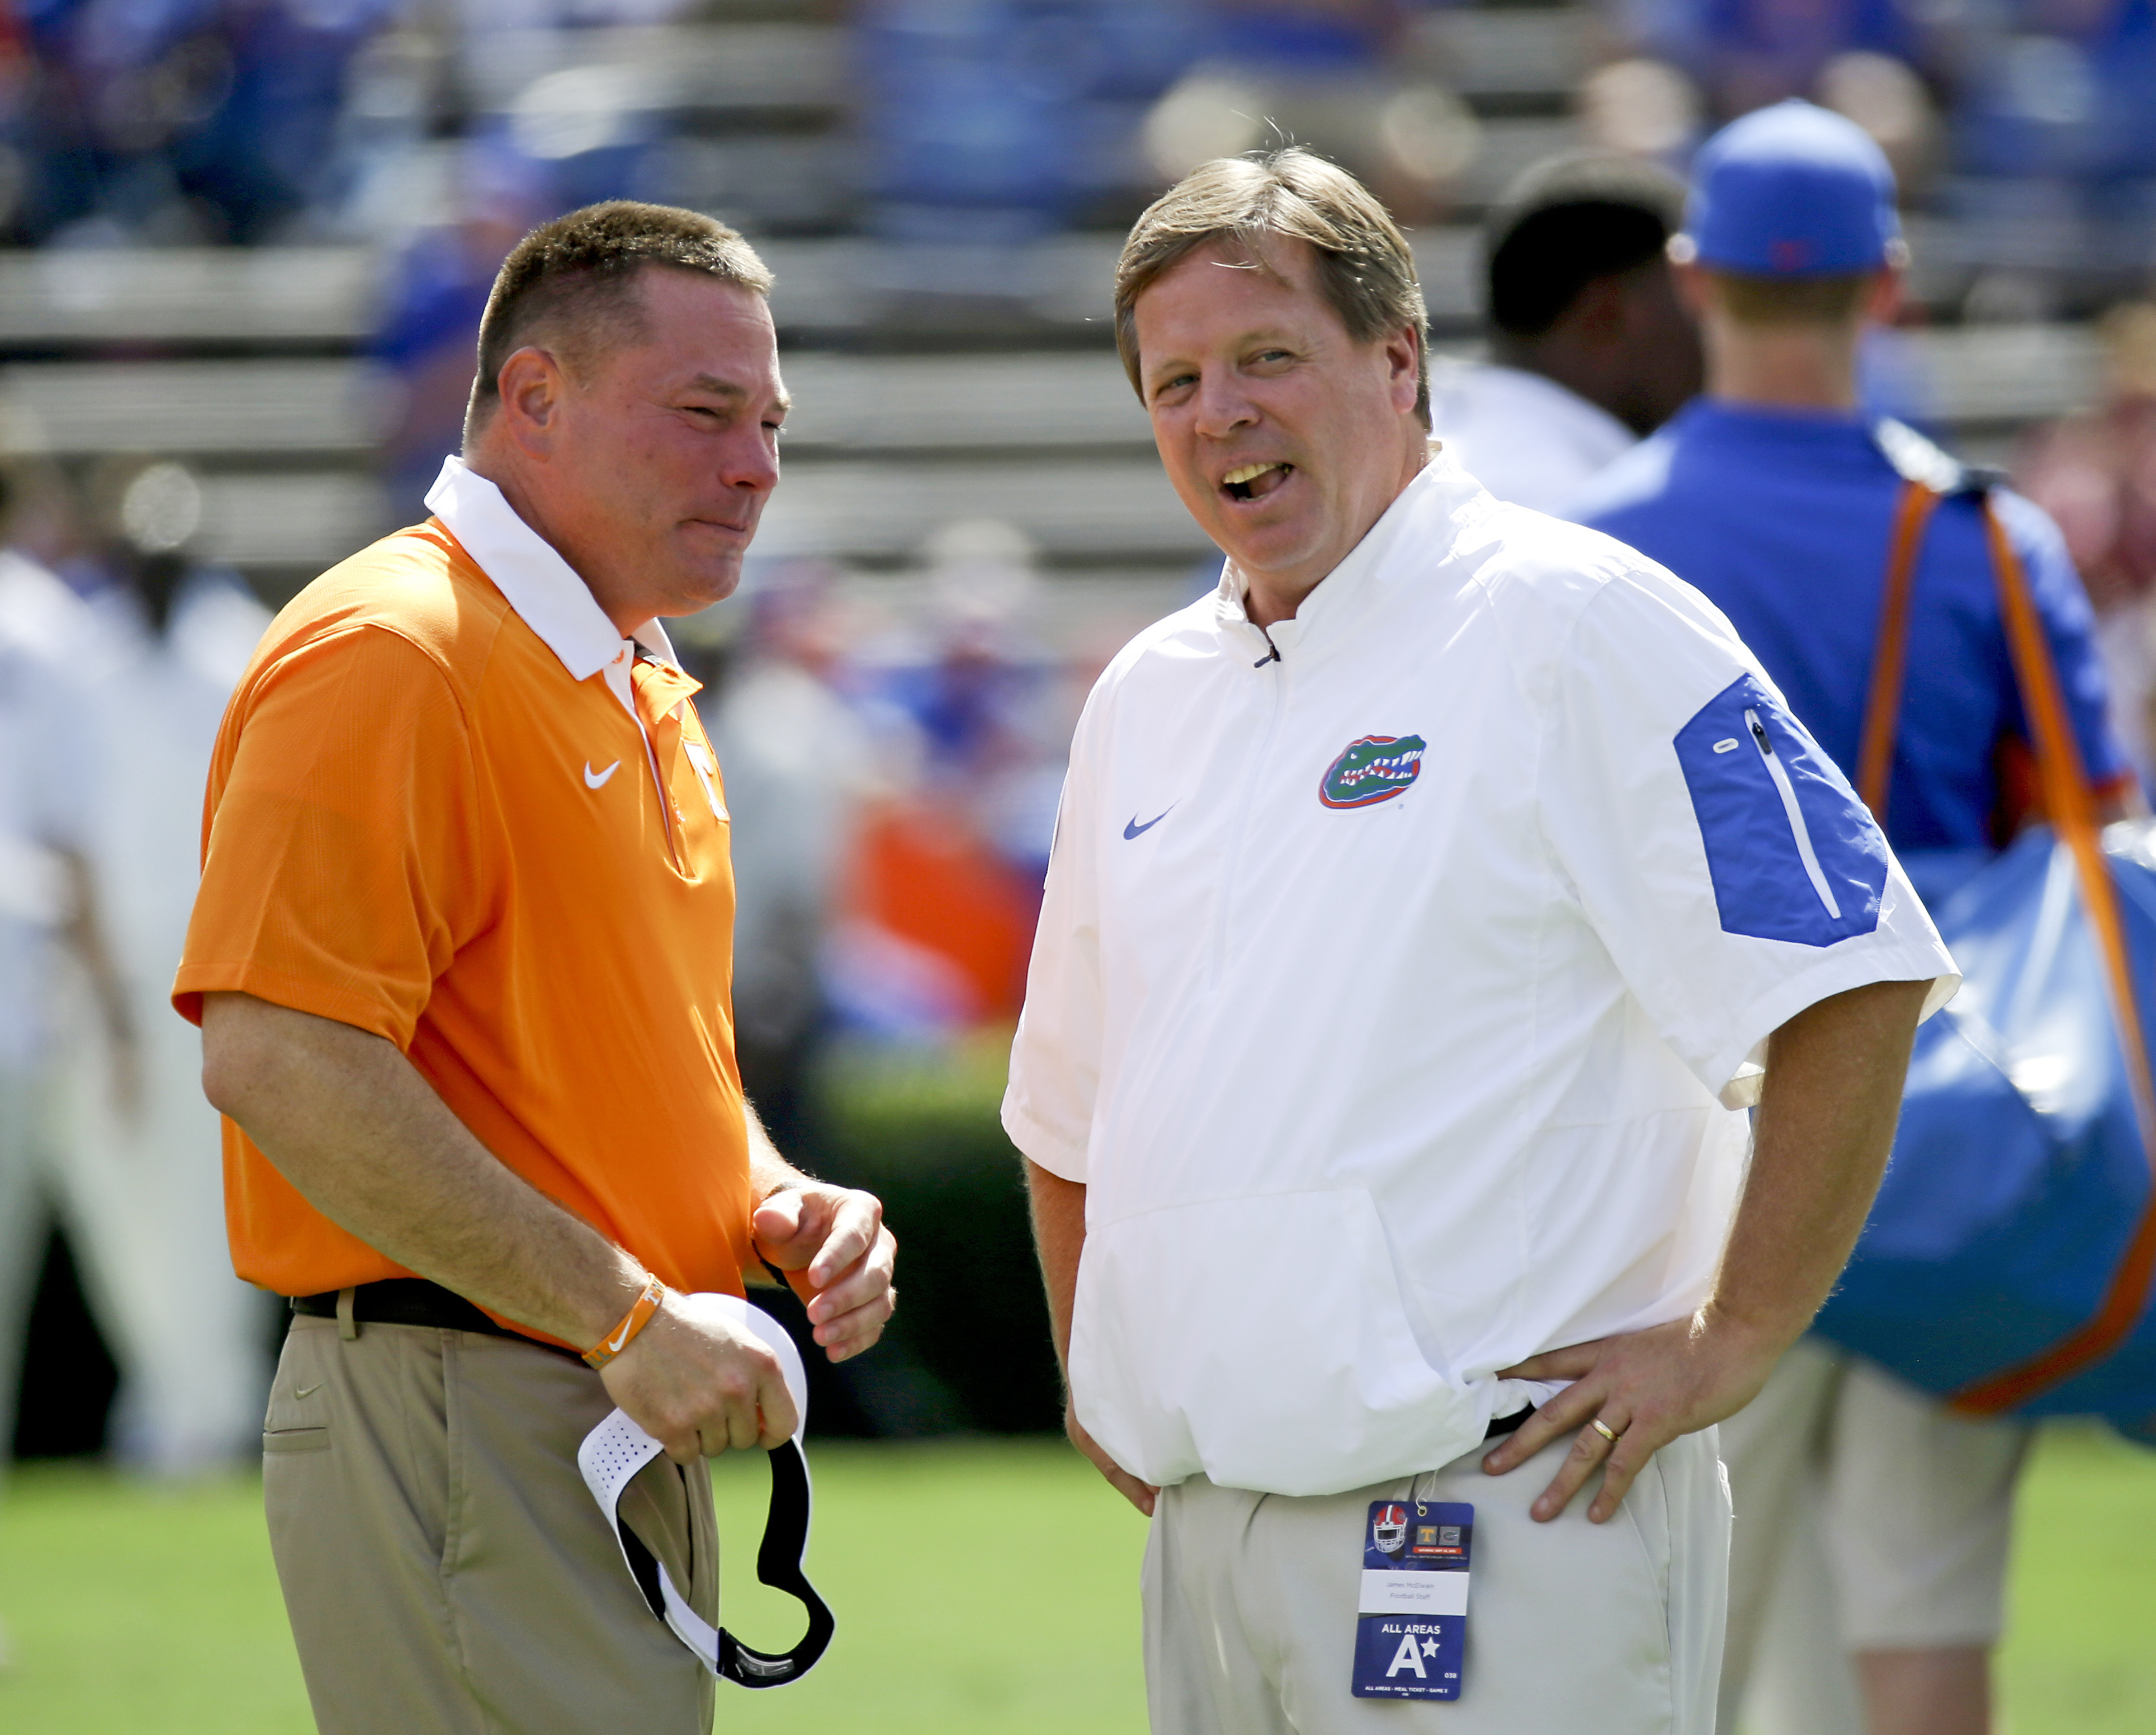 FILE - In this Sept. 26, 2015, file photo, Tennessee head coach Butch Jones, left, and Florida head coach Jim McElwain chat at midfield before an NCAA college football game in Gainesville, Fla. Jones is in his fourth season on the job and believes his Vol